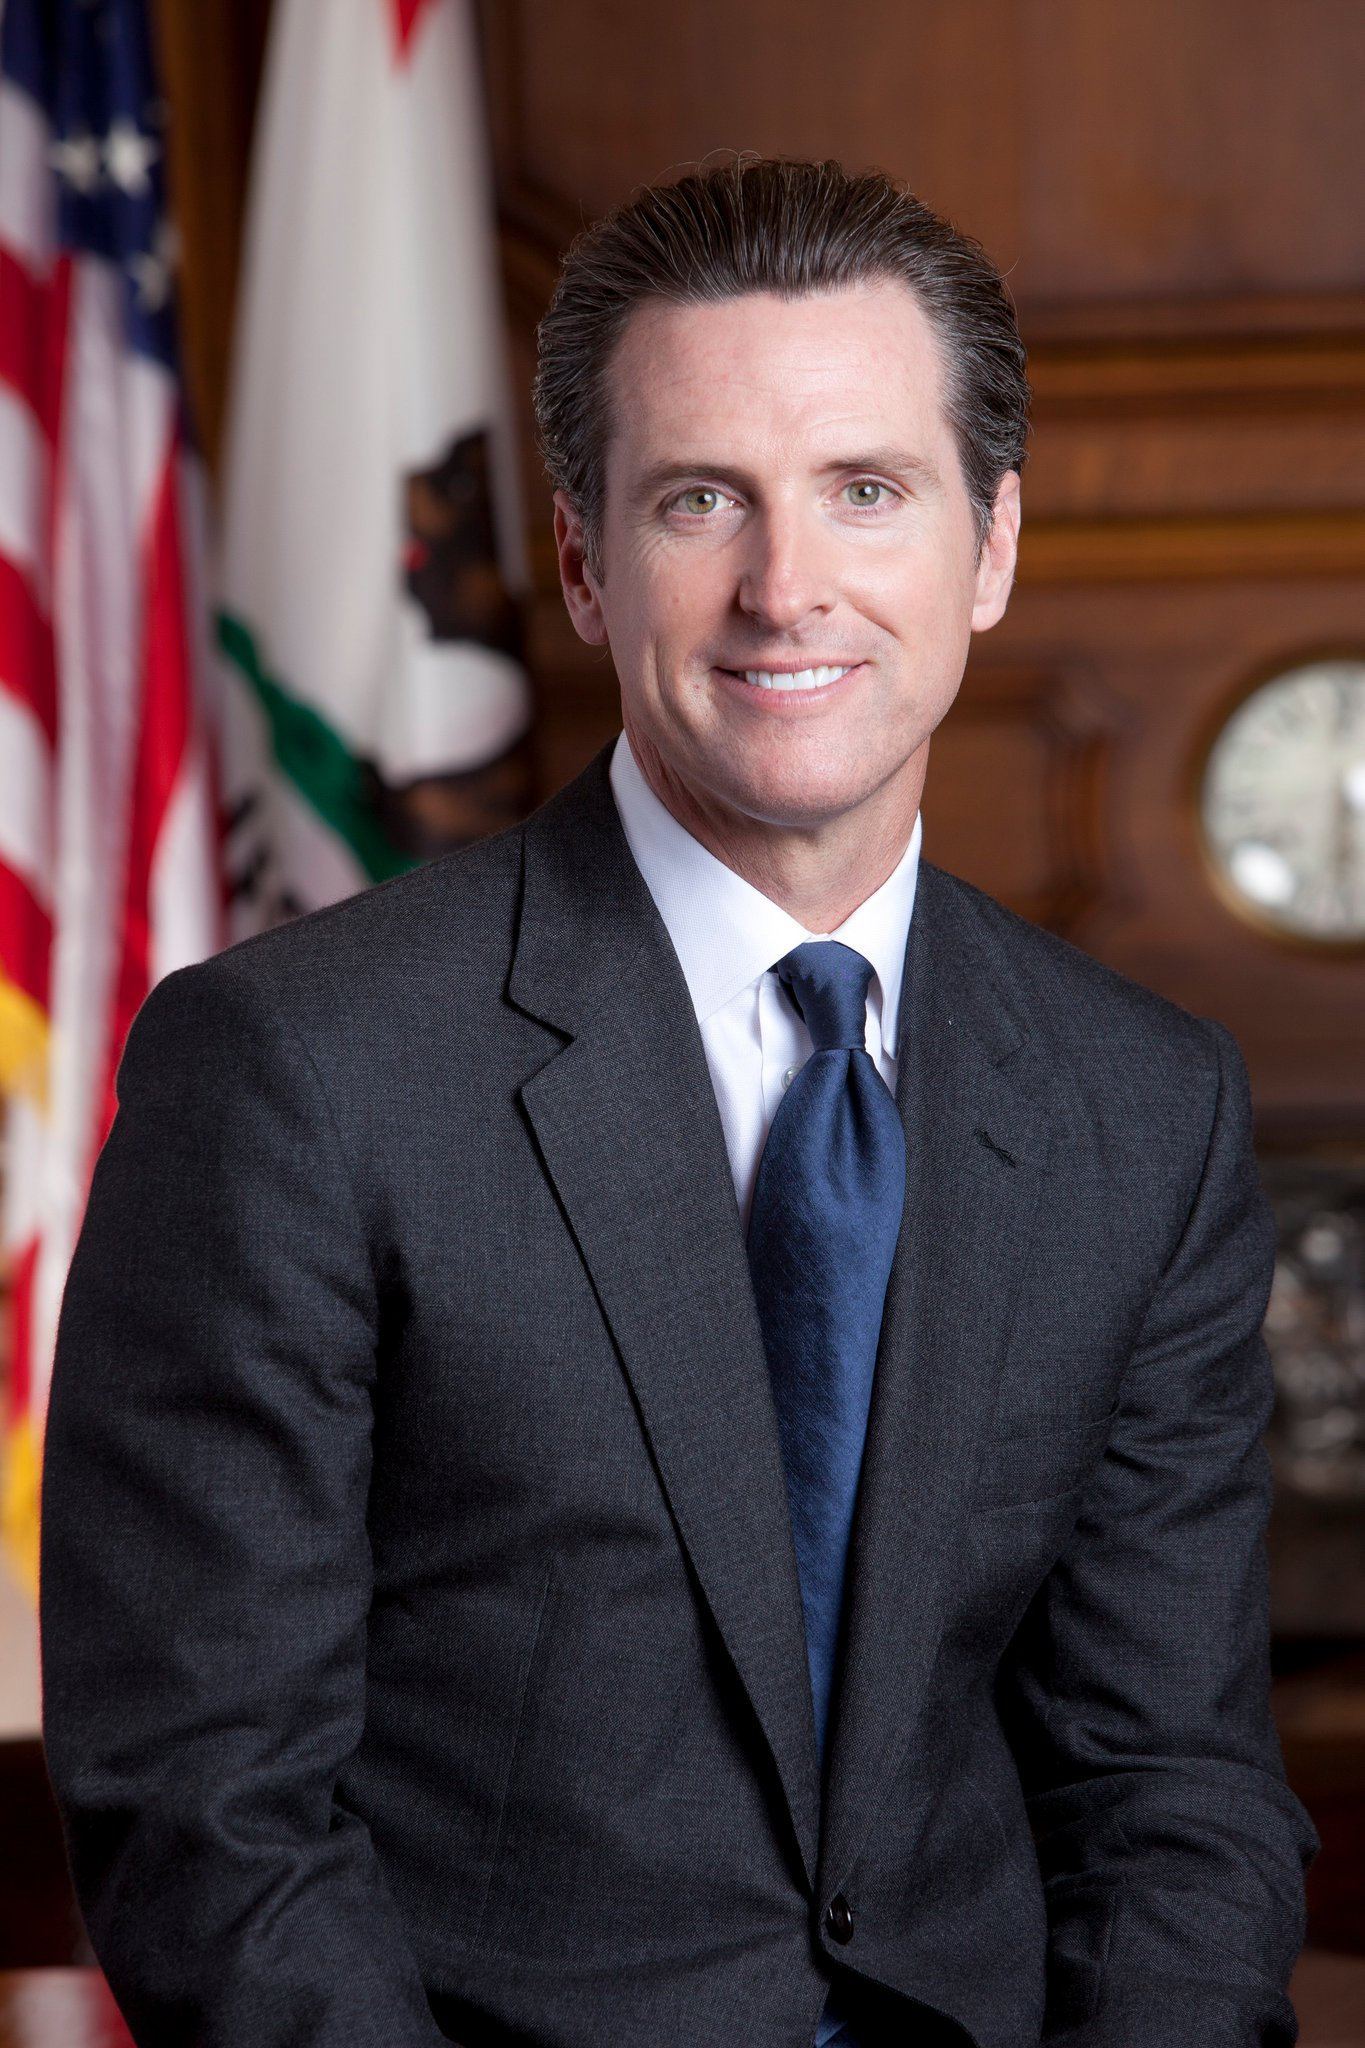 Governor Newsom Issues Statement on PG&E and Potential Bankruptcy